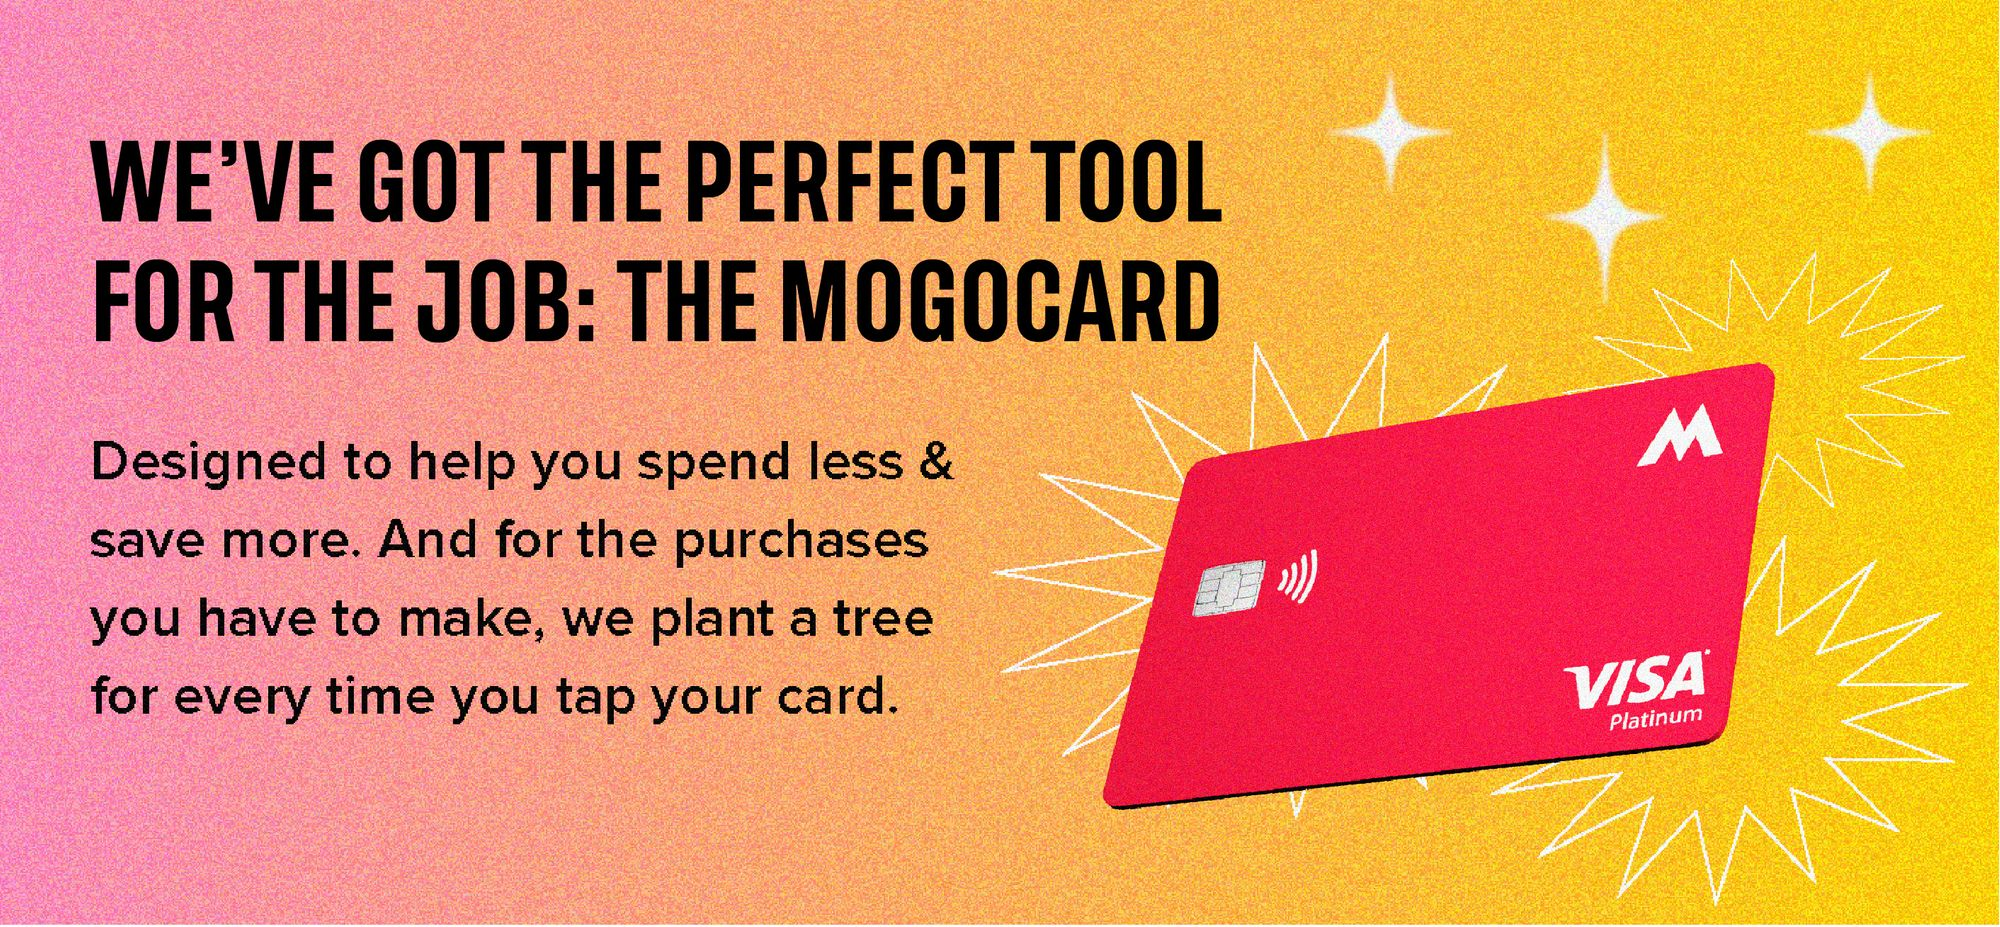 We've got the perfect tool for the job: The MogoCard. Designed to help you spend less & save more. And for the purchases you have to make, we plant a tree for every time you tap your card.